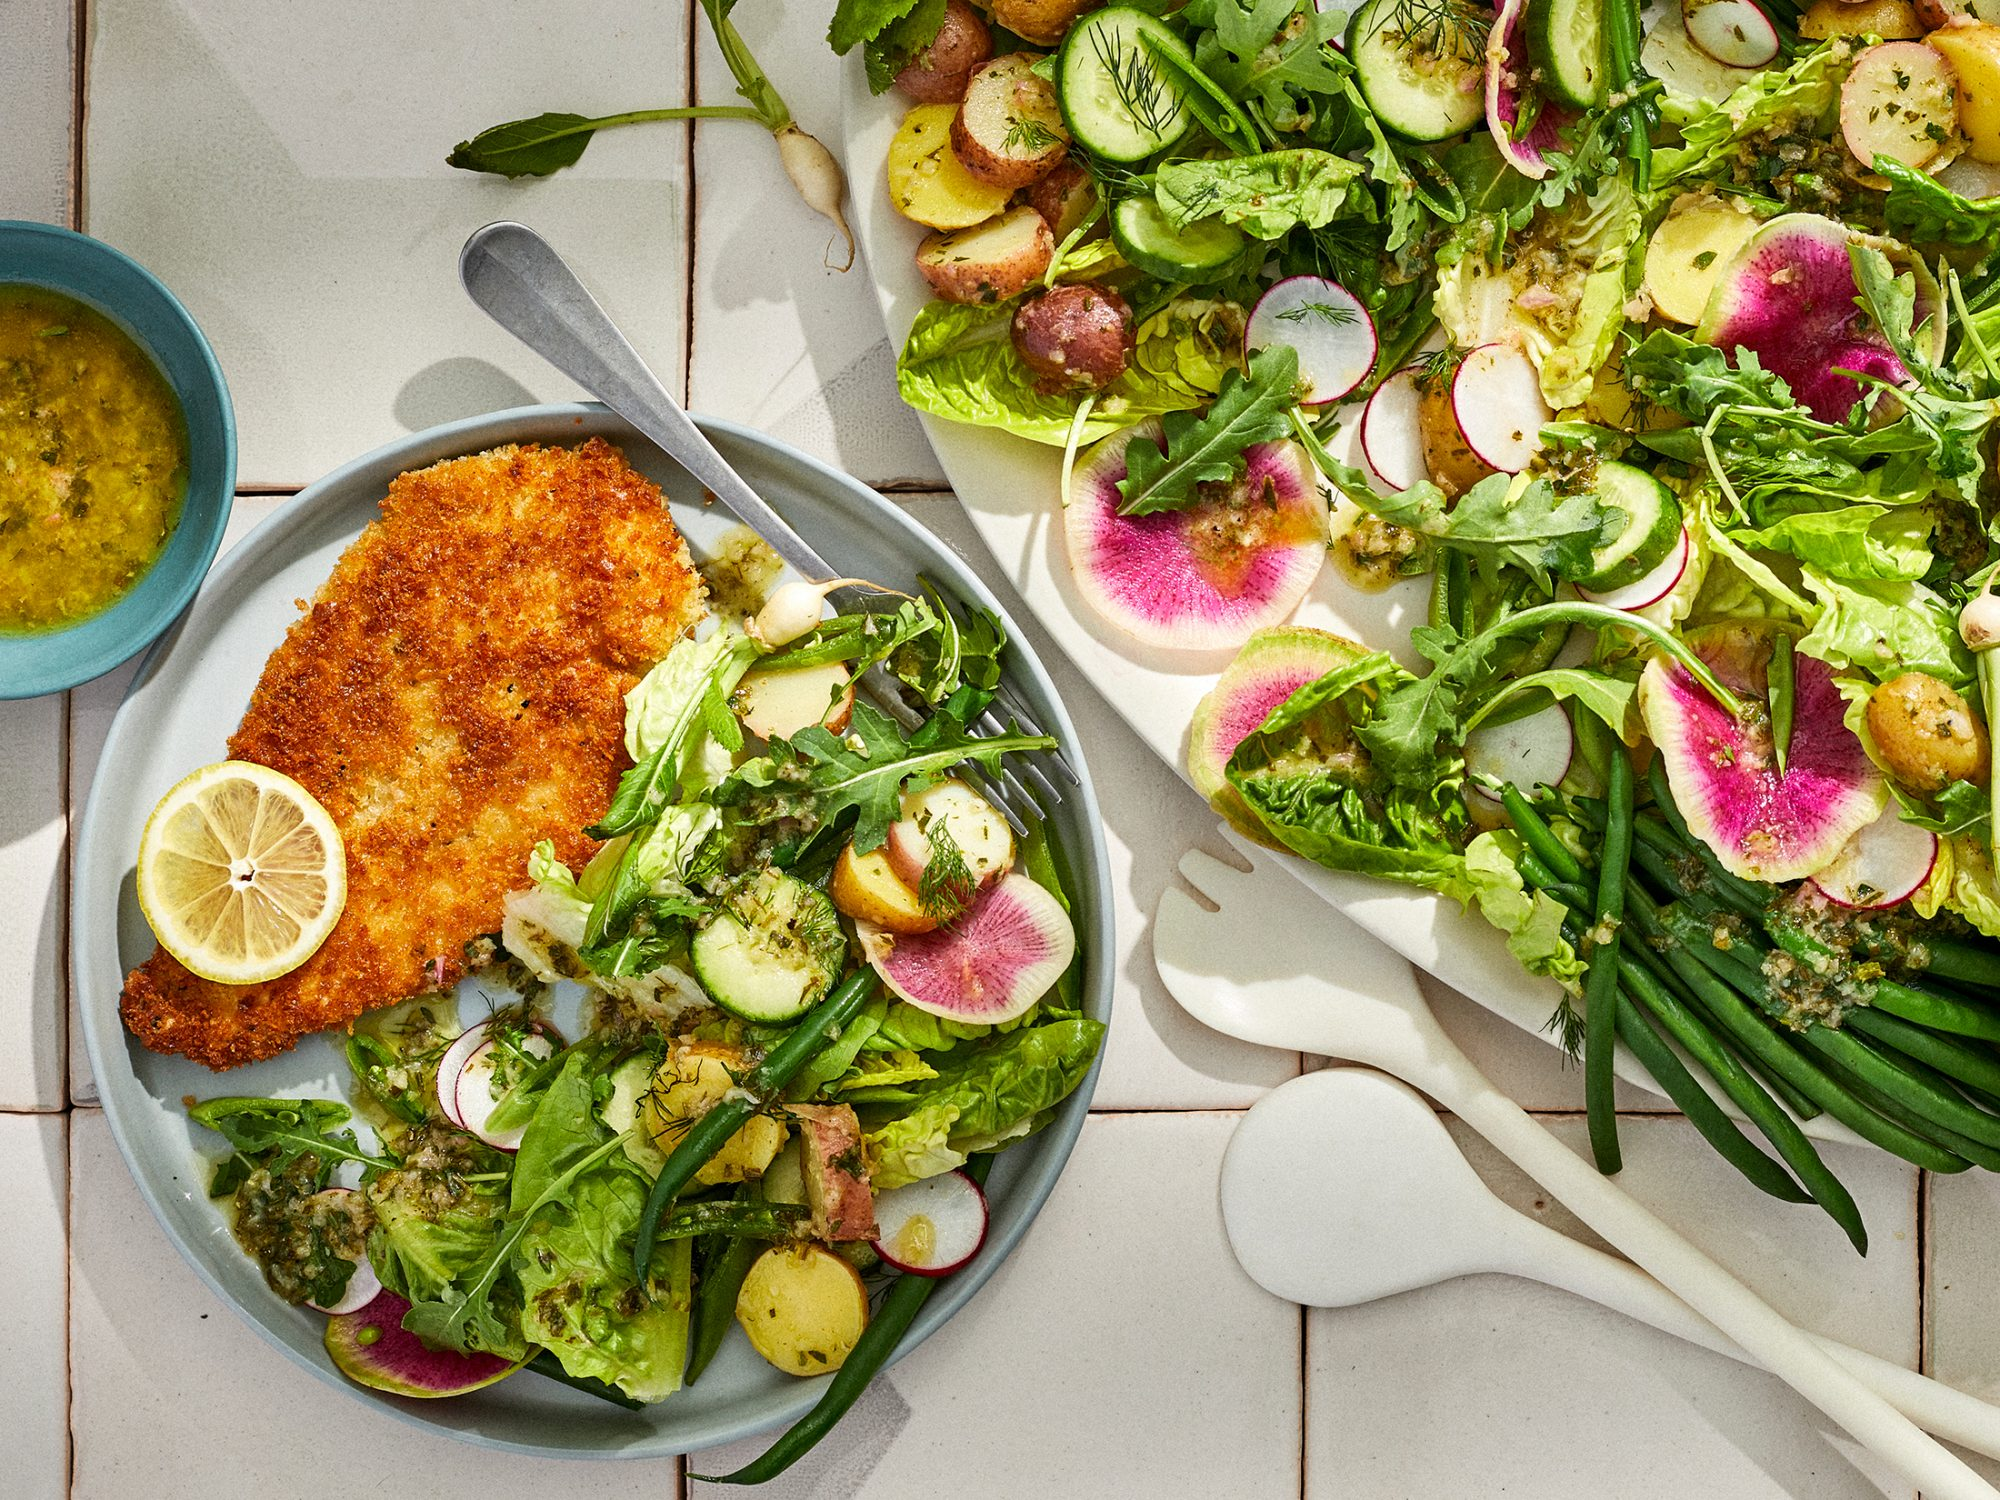 The Best Way to Celebrate Spring Vegetables Is With This Salad and Chicken Cutlet Combo